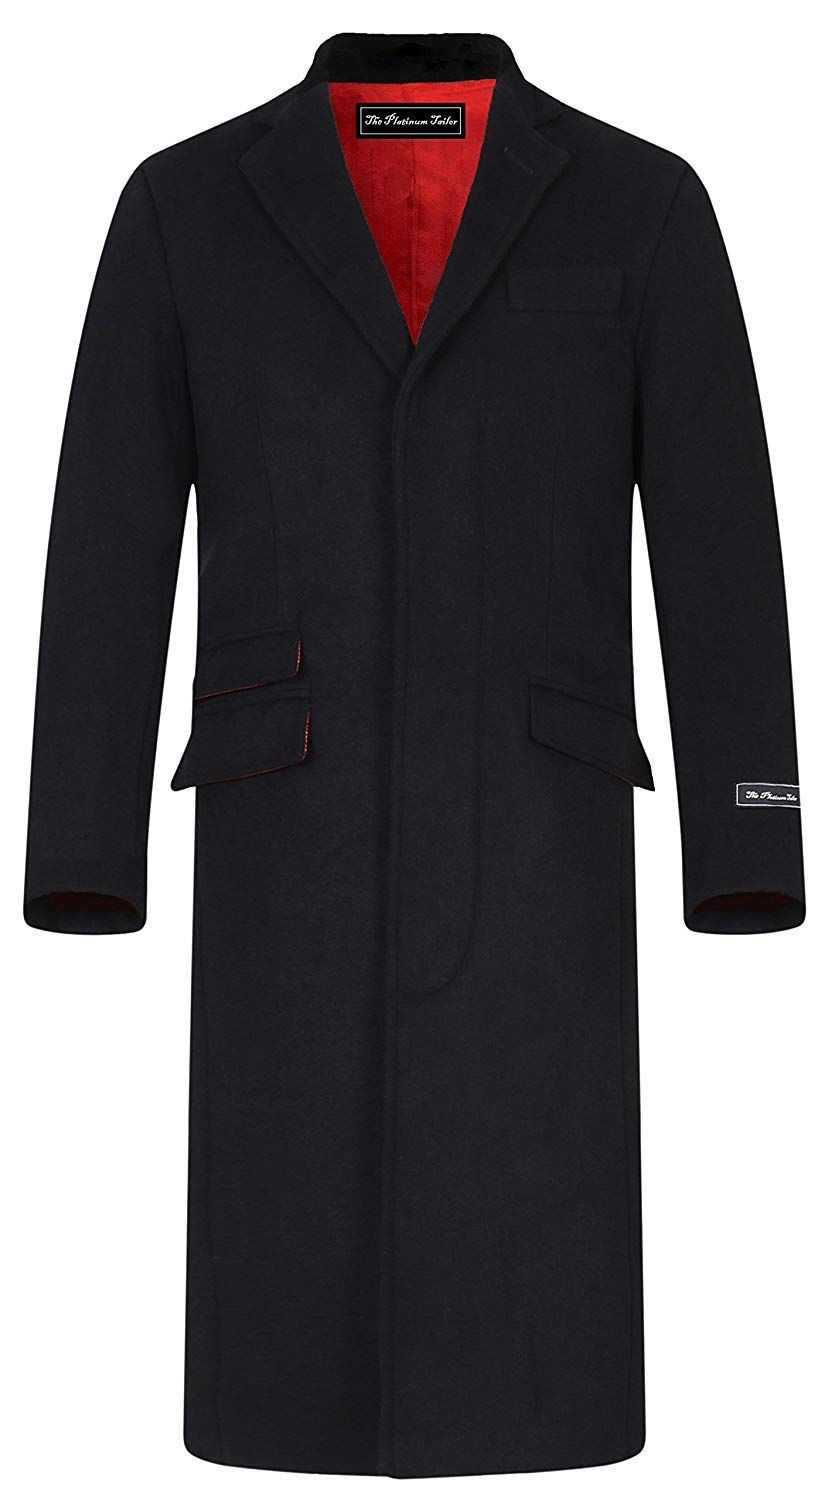 31a19d3f0c71 Men s Vintage Style Coats and Jackets